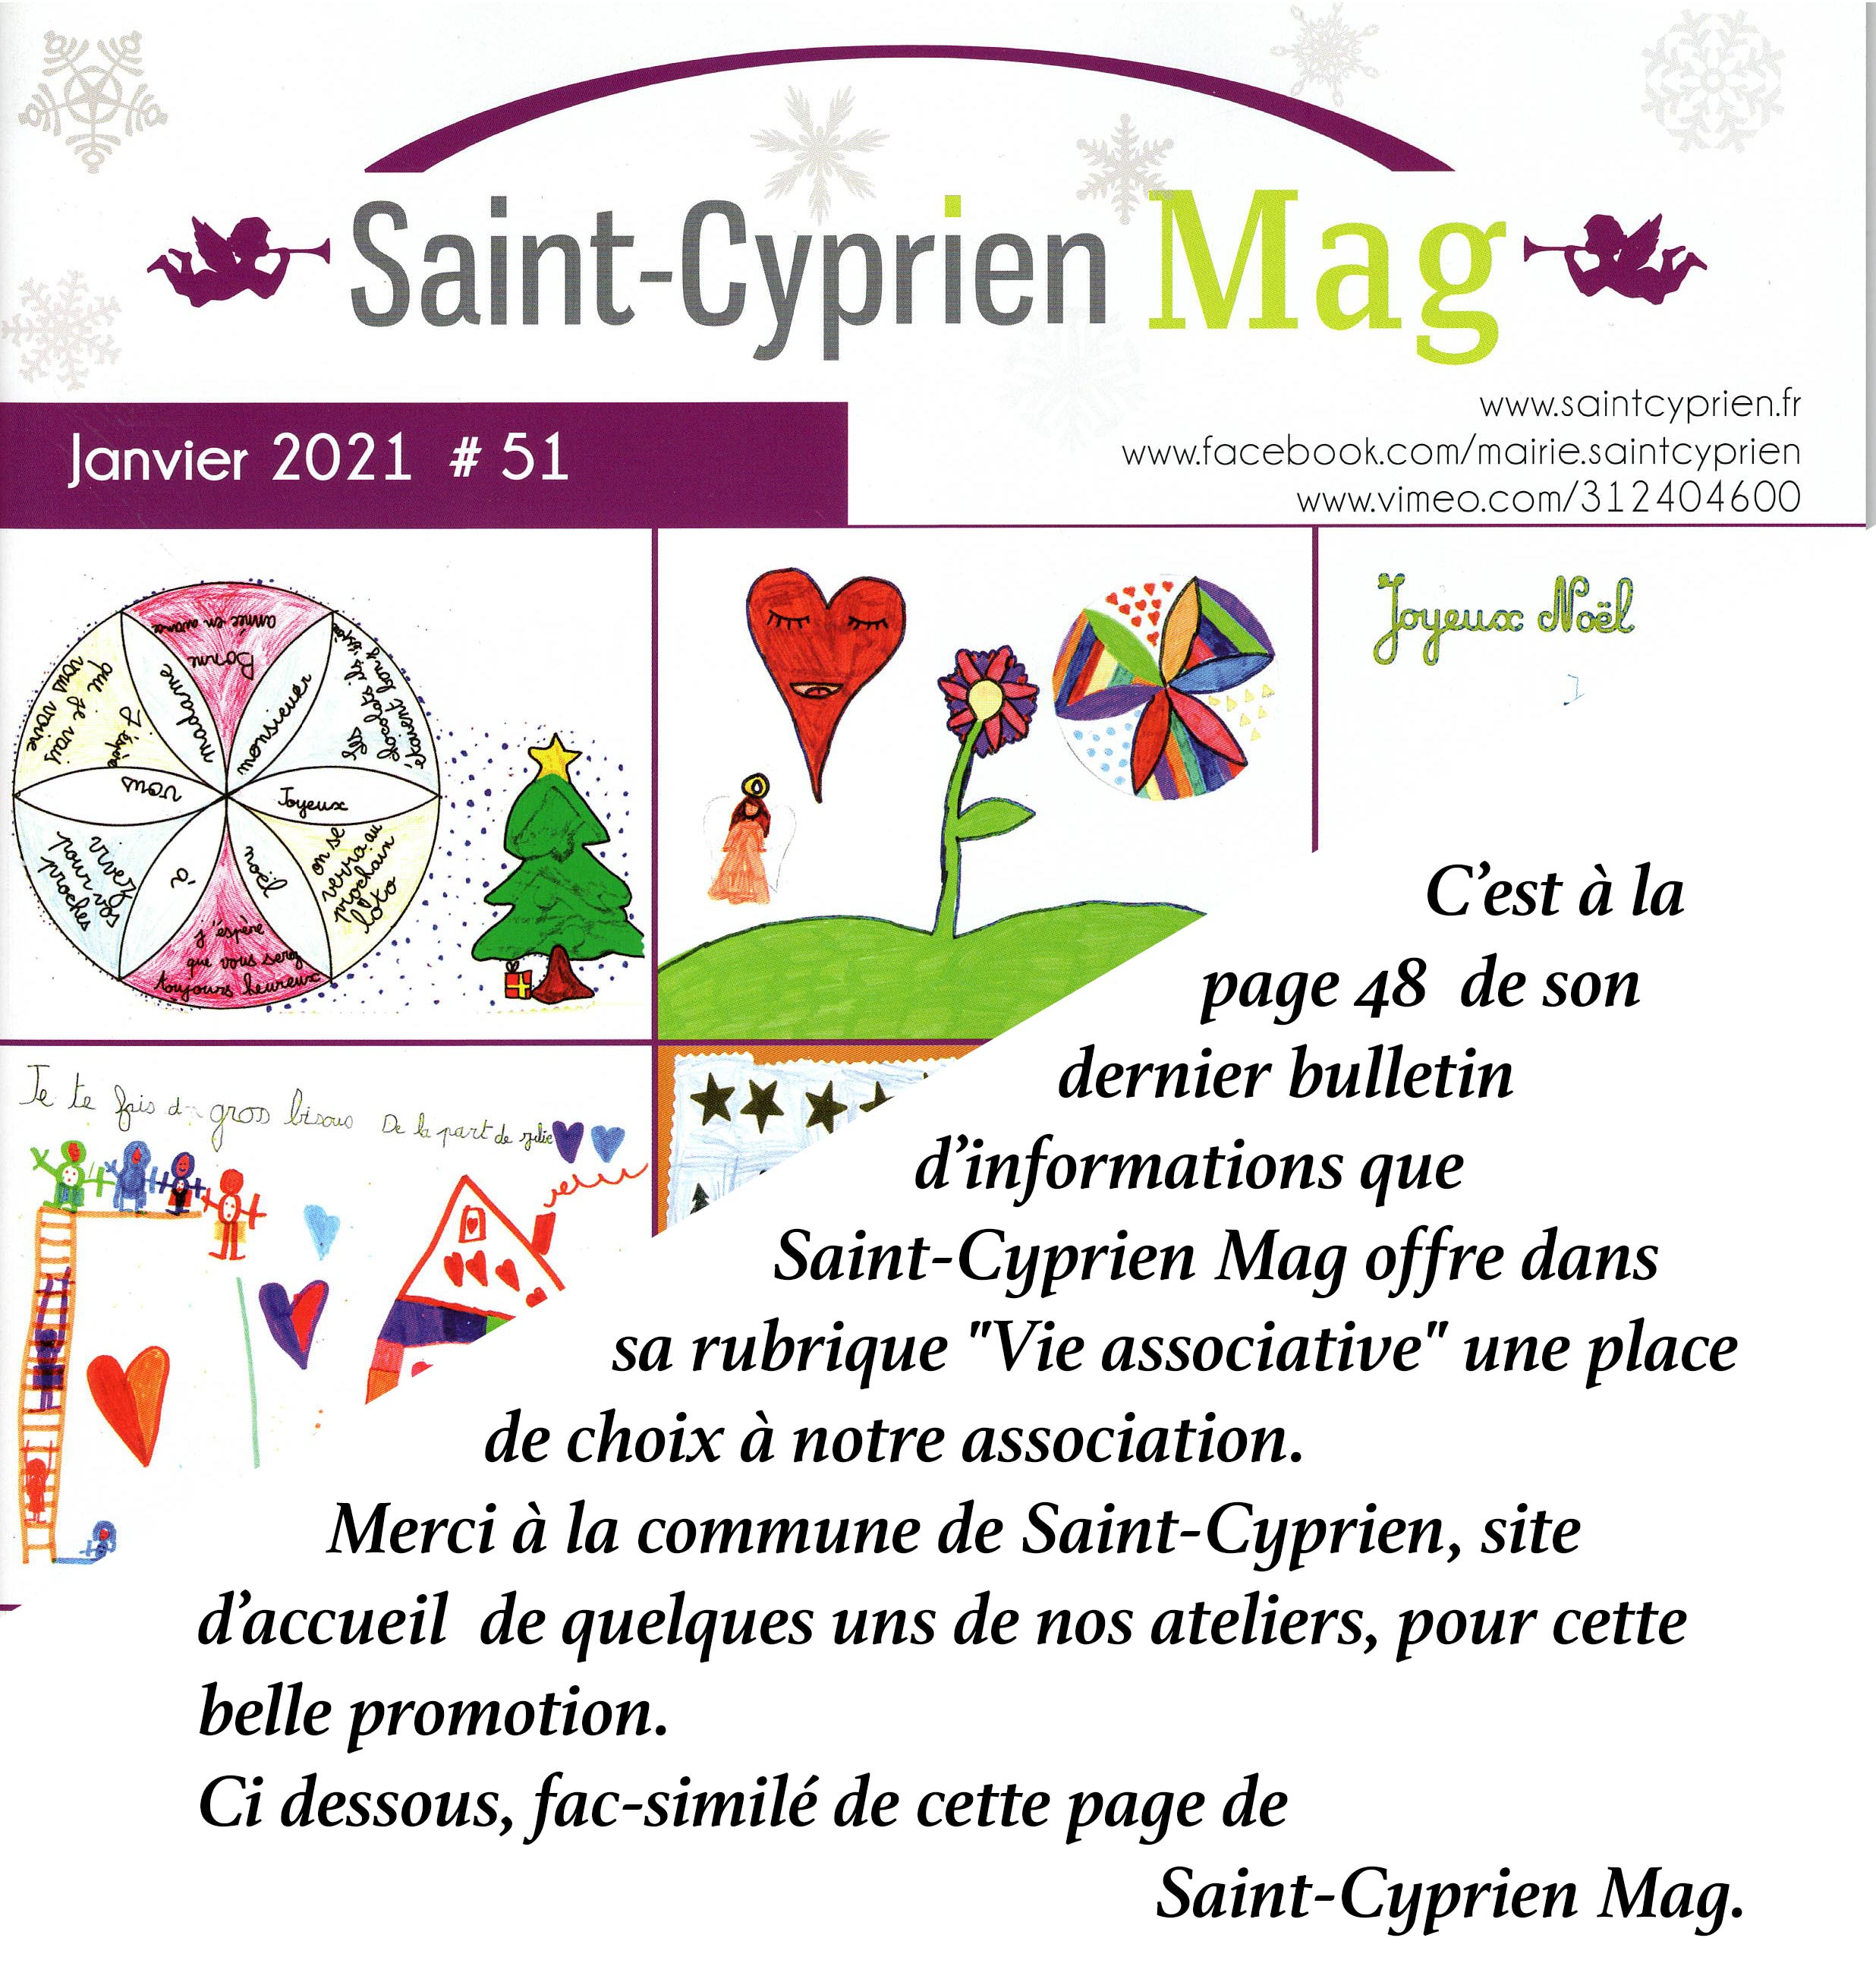 Saint Cyprien Mag copie